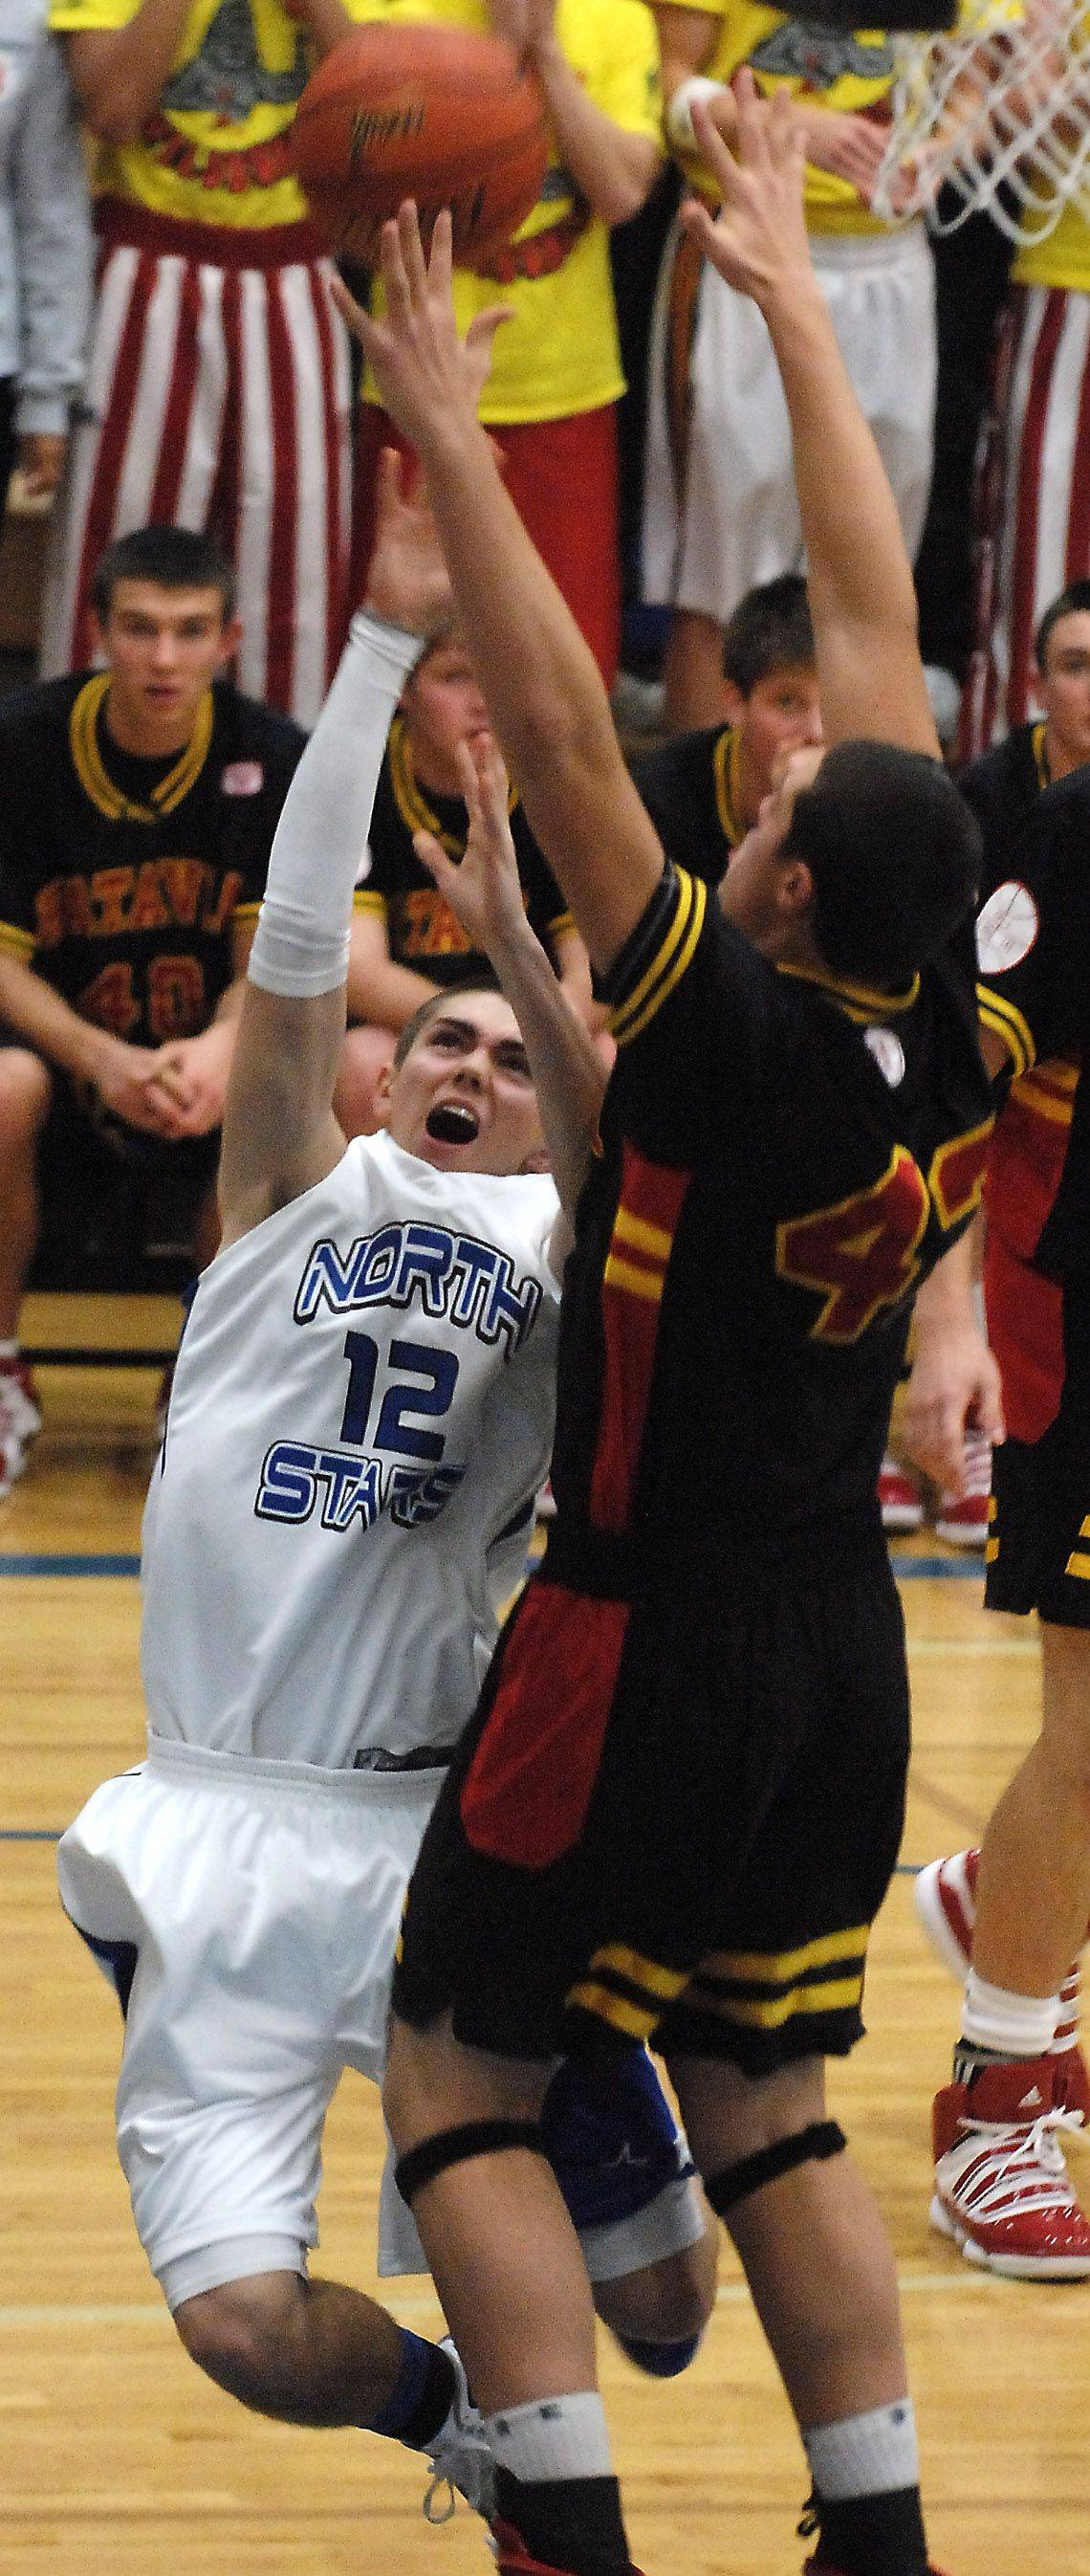 St. Charles North's Quinten Payne scores and gets fouled by Batavia's Cole Gardner during the opening minutes of Thursday's game in St. Charles.